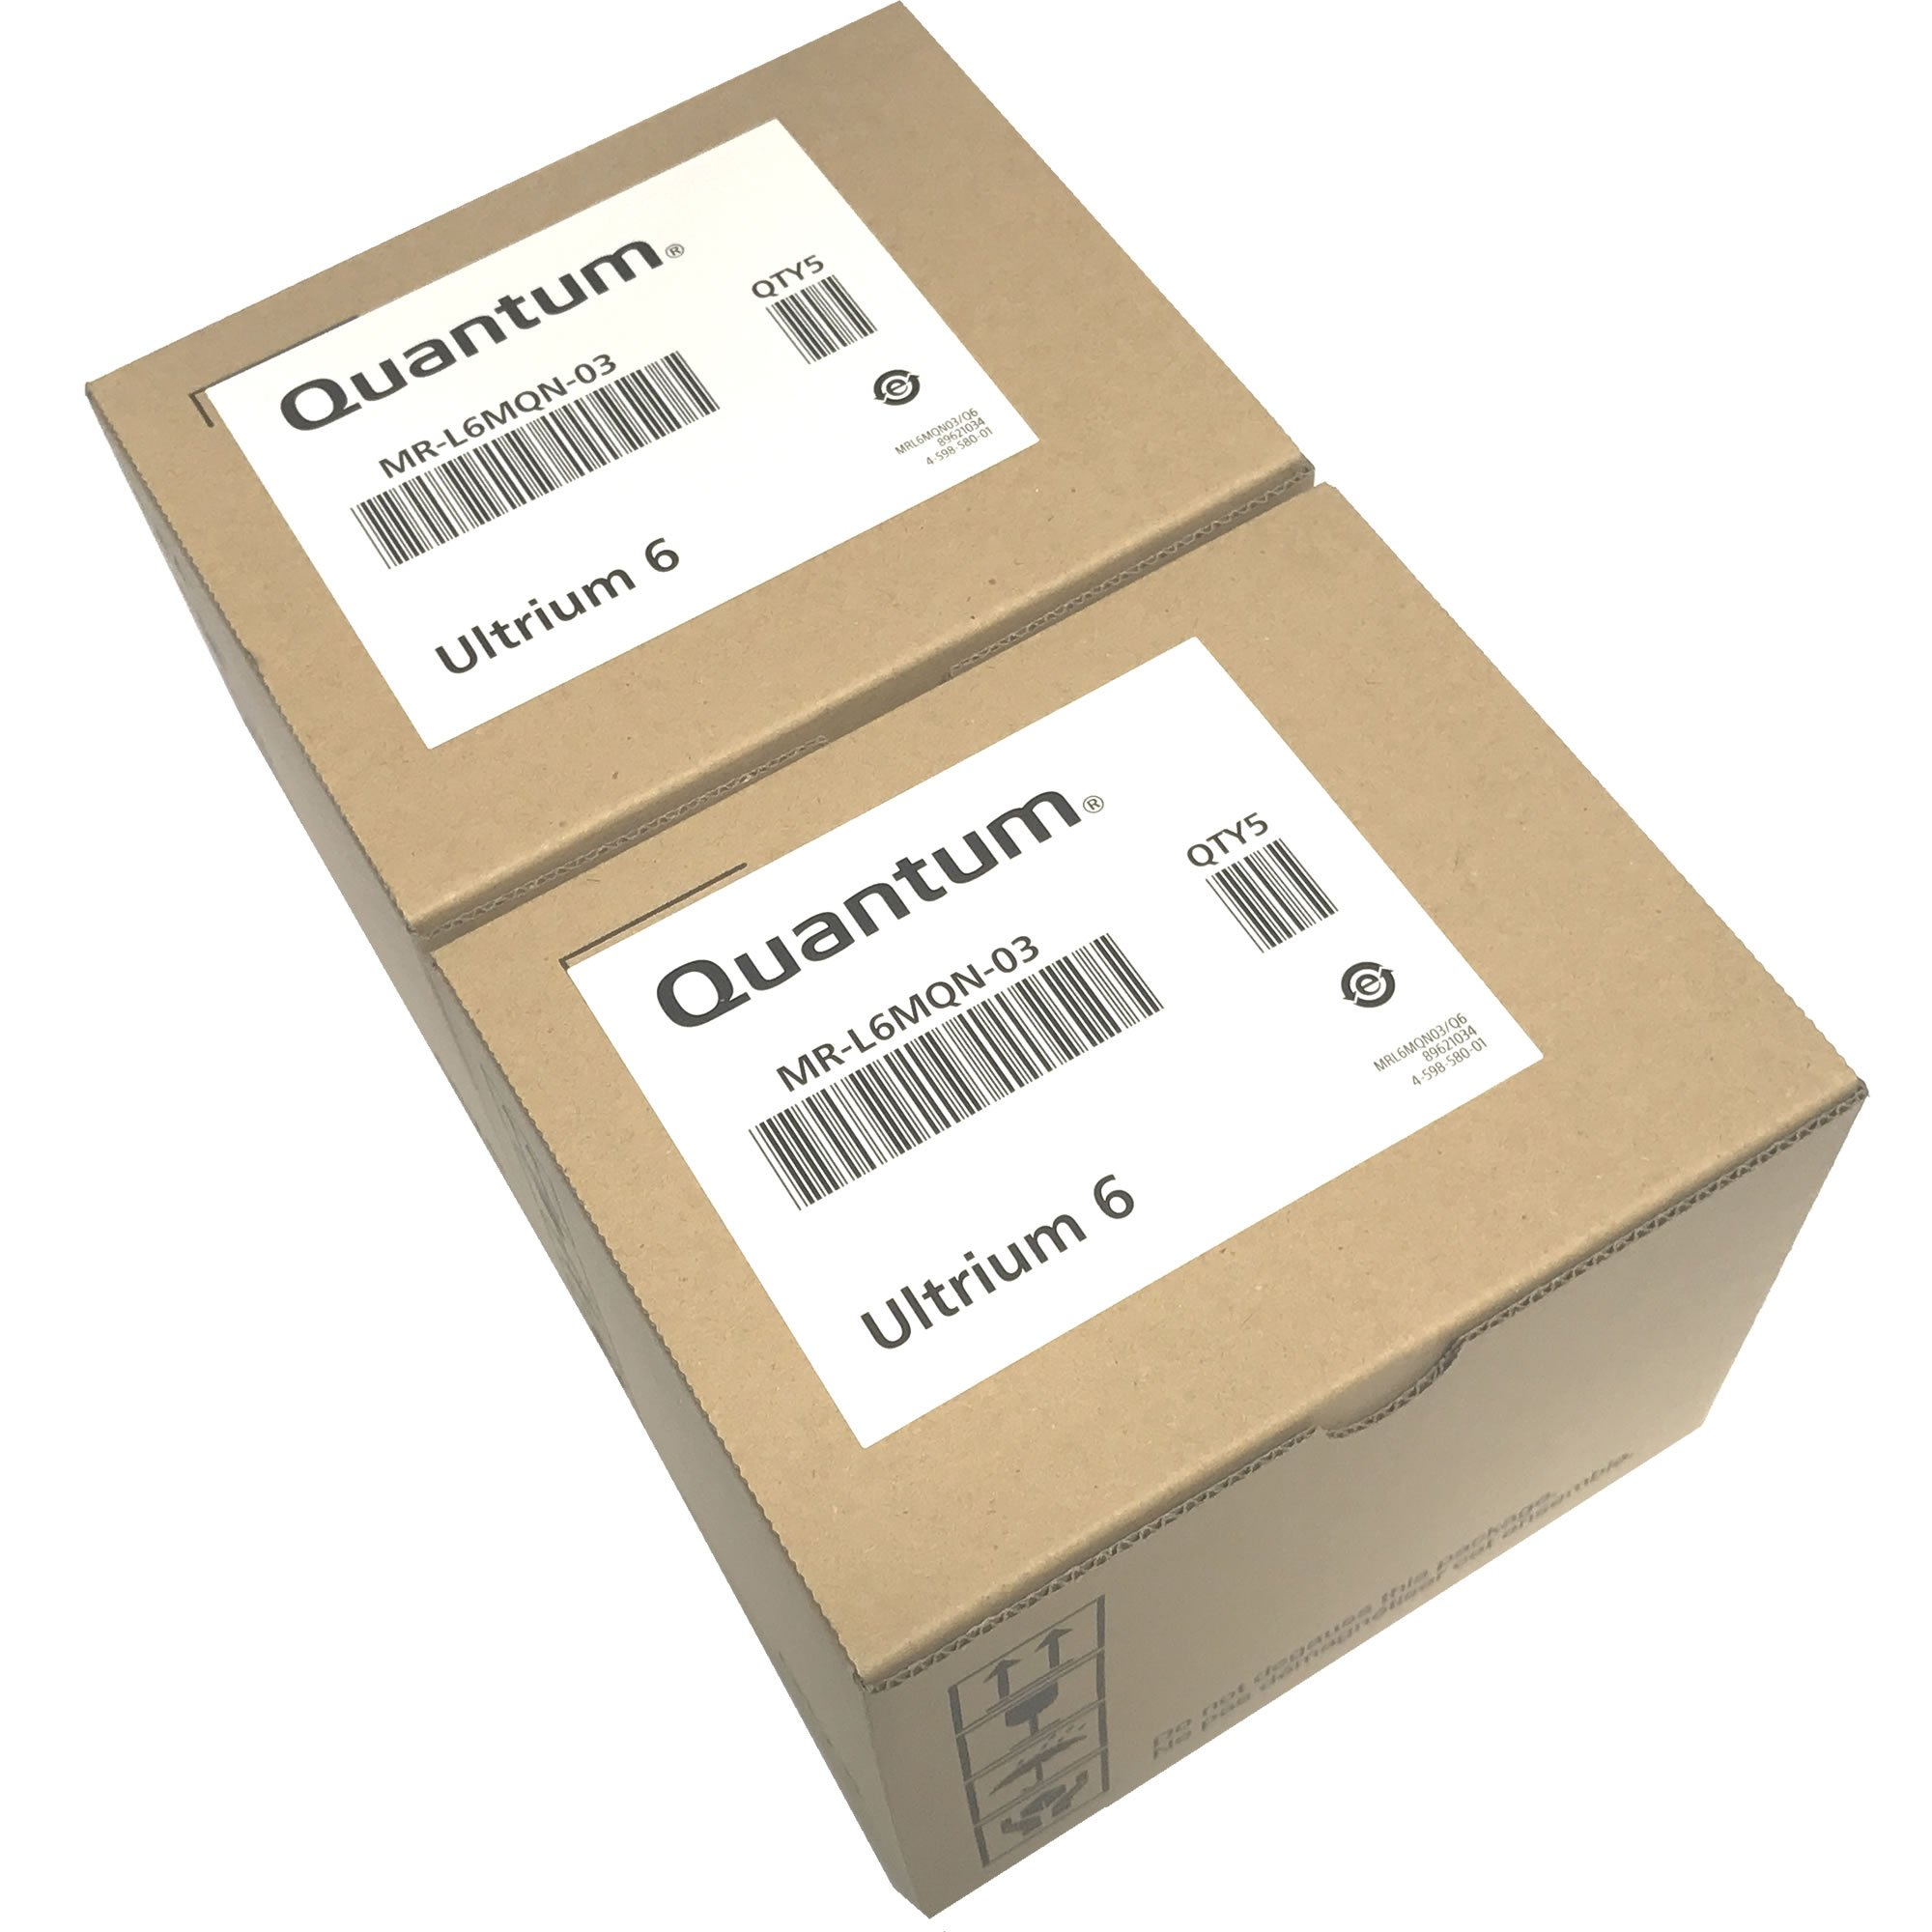 10-Pack Quantum MR-L6MQN-03 LTO 6 Ultrium (2.5/6.25 TB) Data Tape Cartridges by Quantum